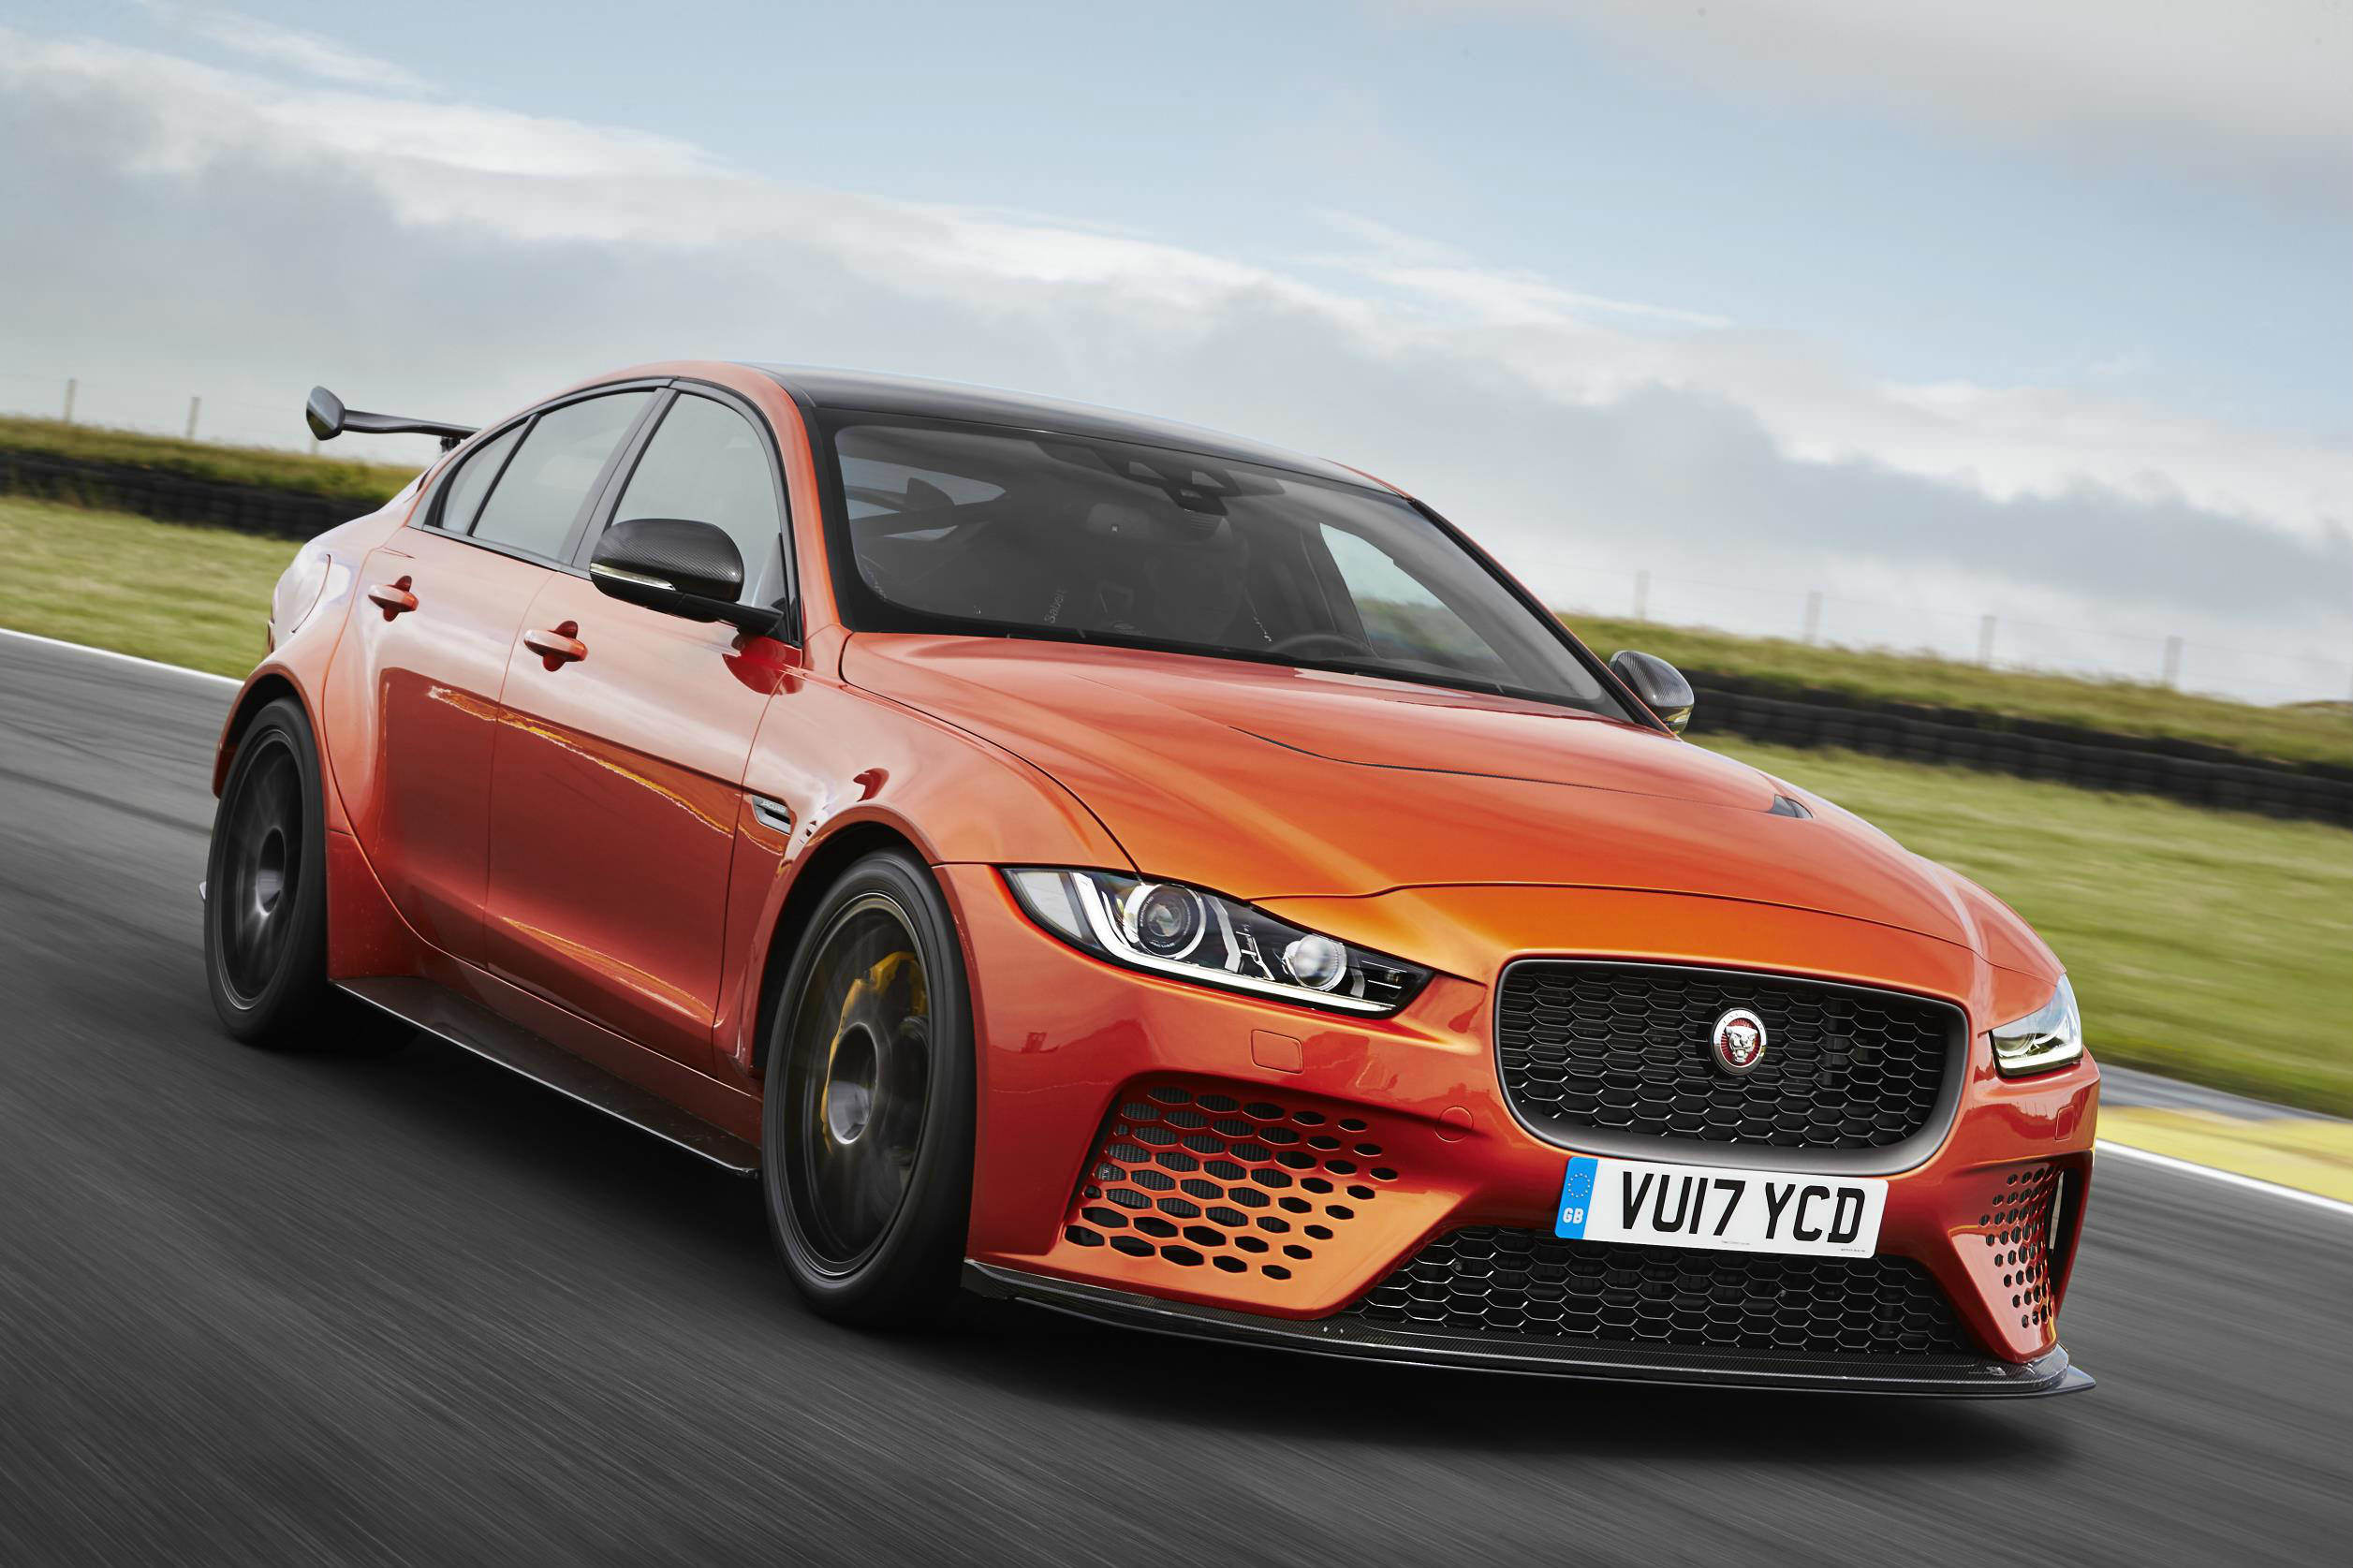 image of an orange jaguar xe sv project 8 car